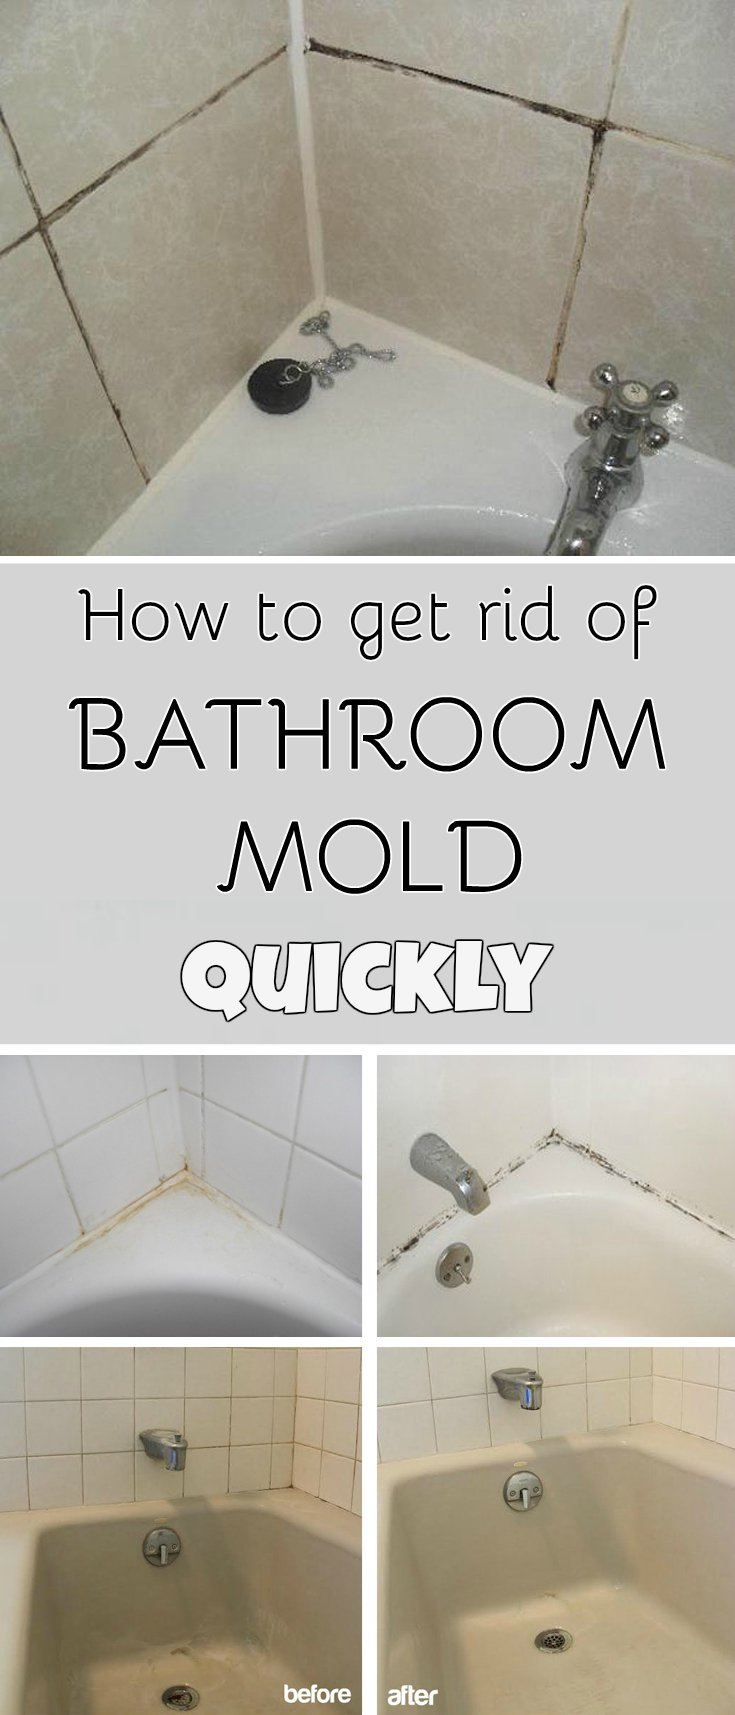 How to get rid of bathroom mold quickly - How to clean black mold in bathroom ...